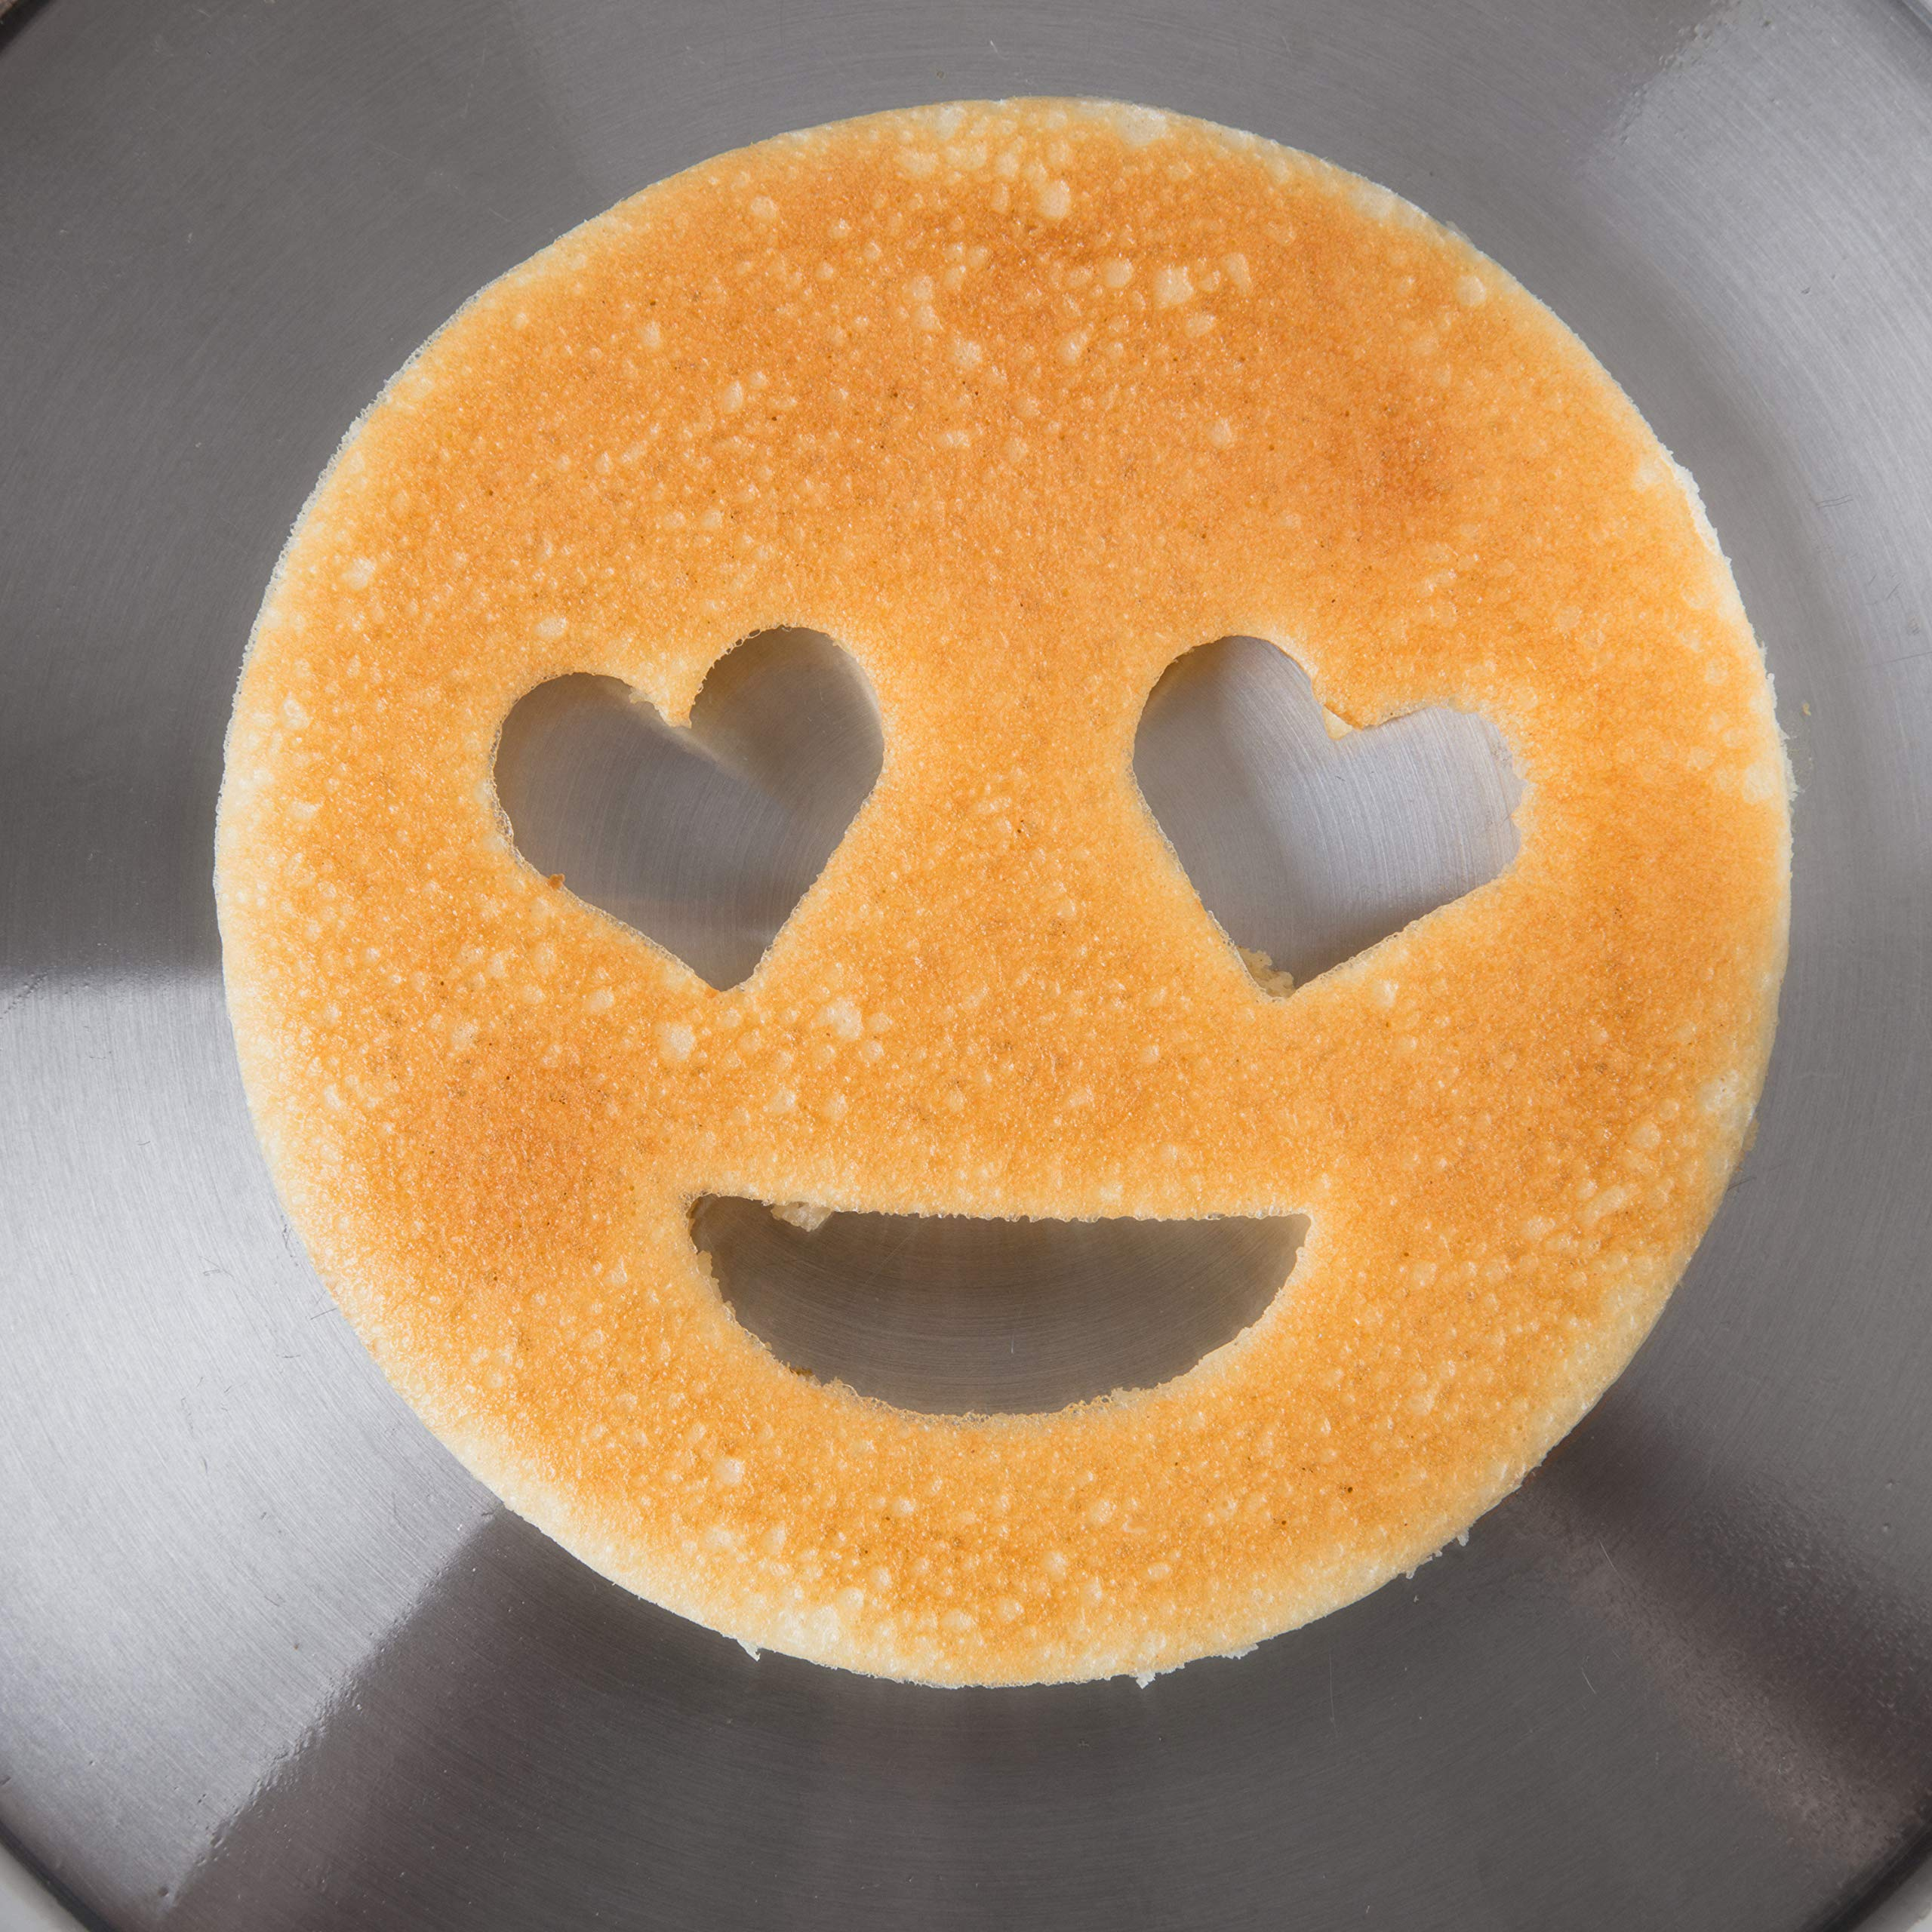 Emoji Pancake Molds and Egg Rings (4 Pack) for Kids AND Adults - Reusable Silicone Smiley Face Maker Doubles as Cookie Maker Set- FDA Approved, BPA Free, Food Safe, Heat Resistant Silicone by Good Cooking (Image #5)